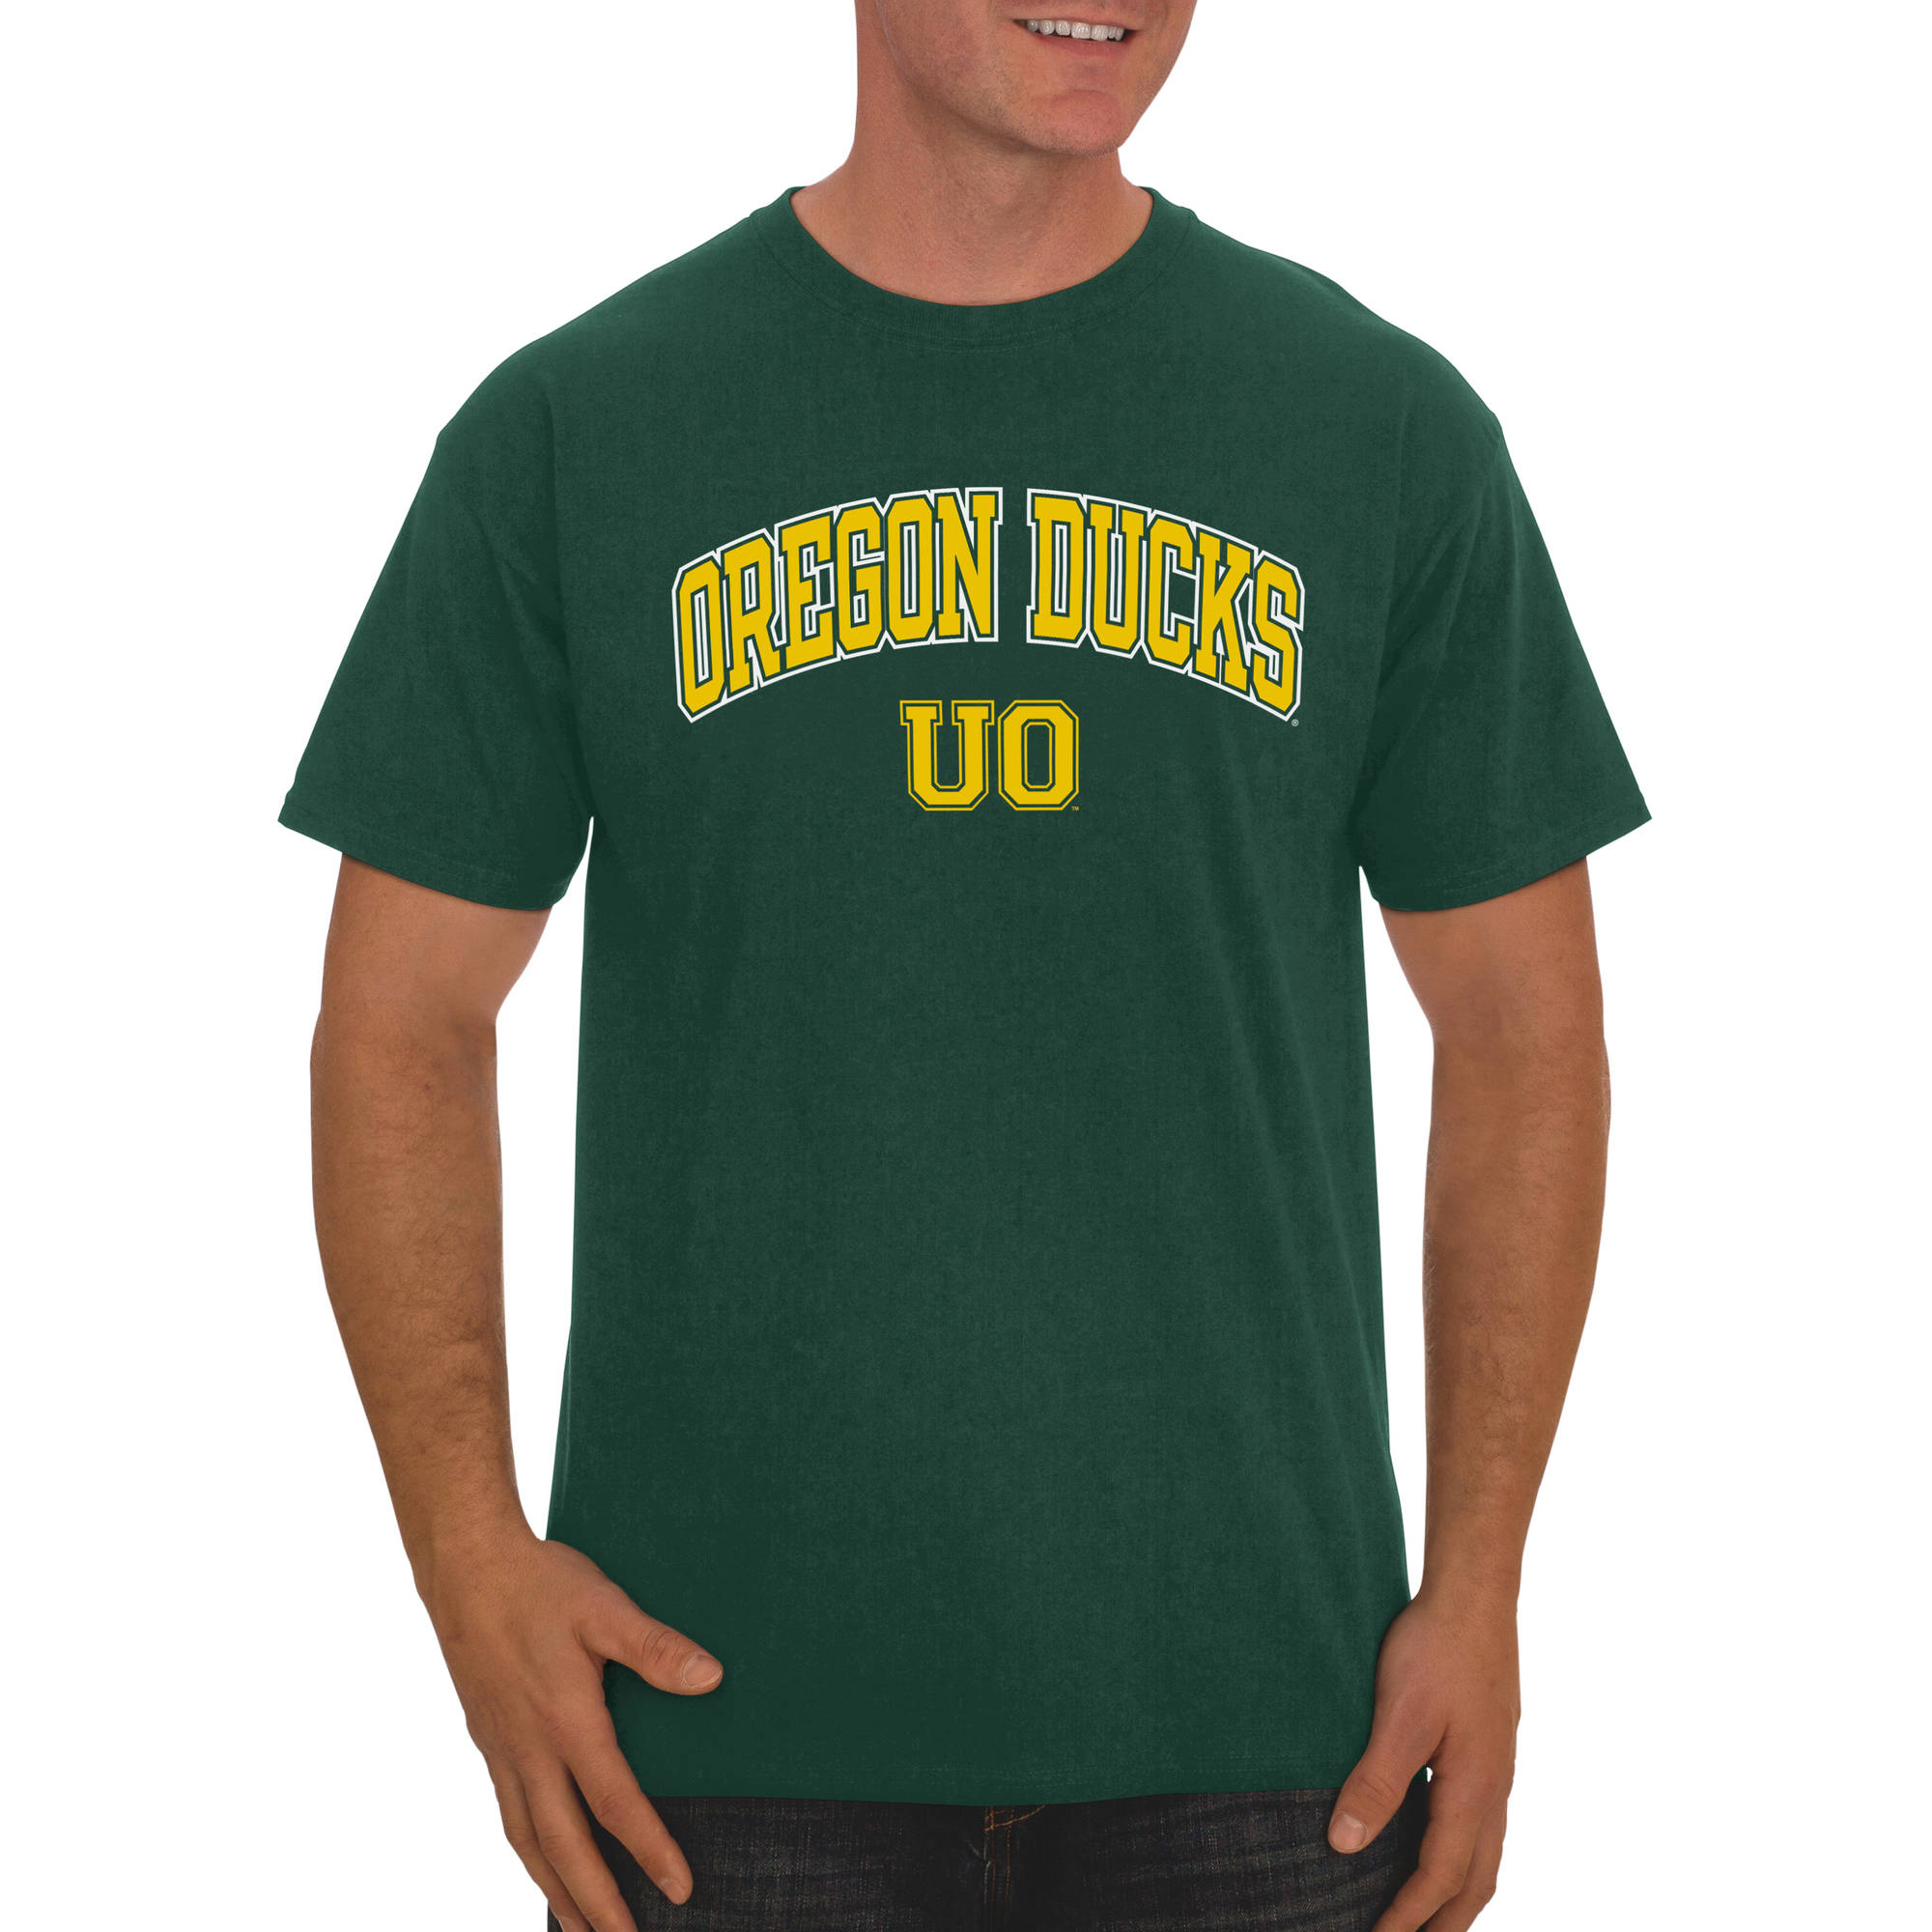 Russell NCAA Oregon Ducks Men's Classic Cotton T-Shirt